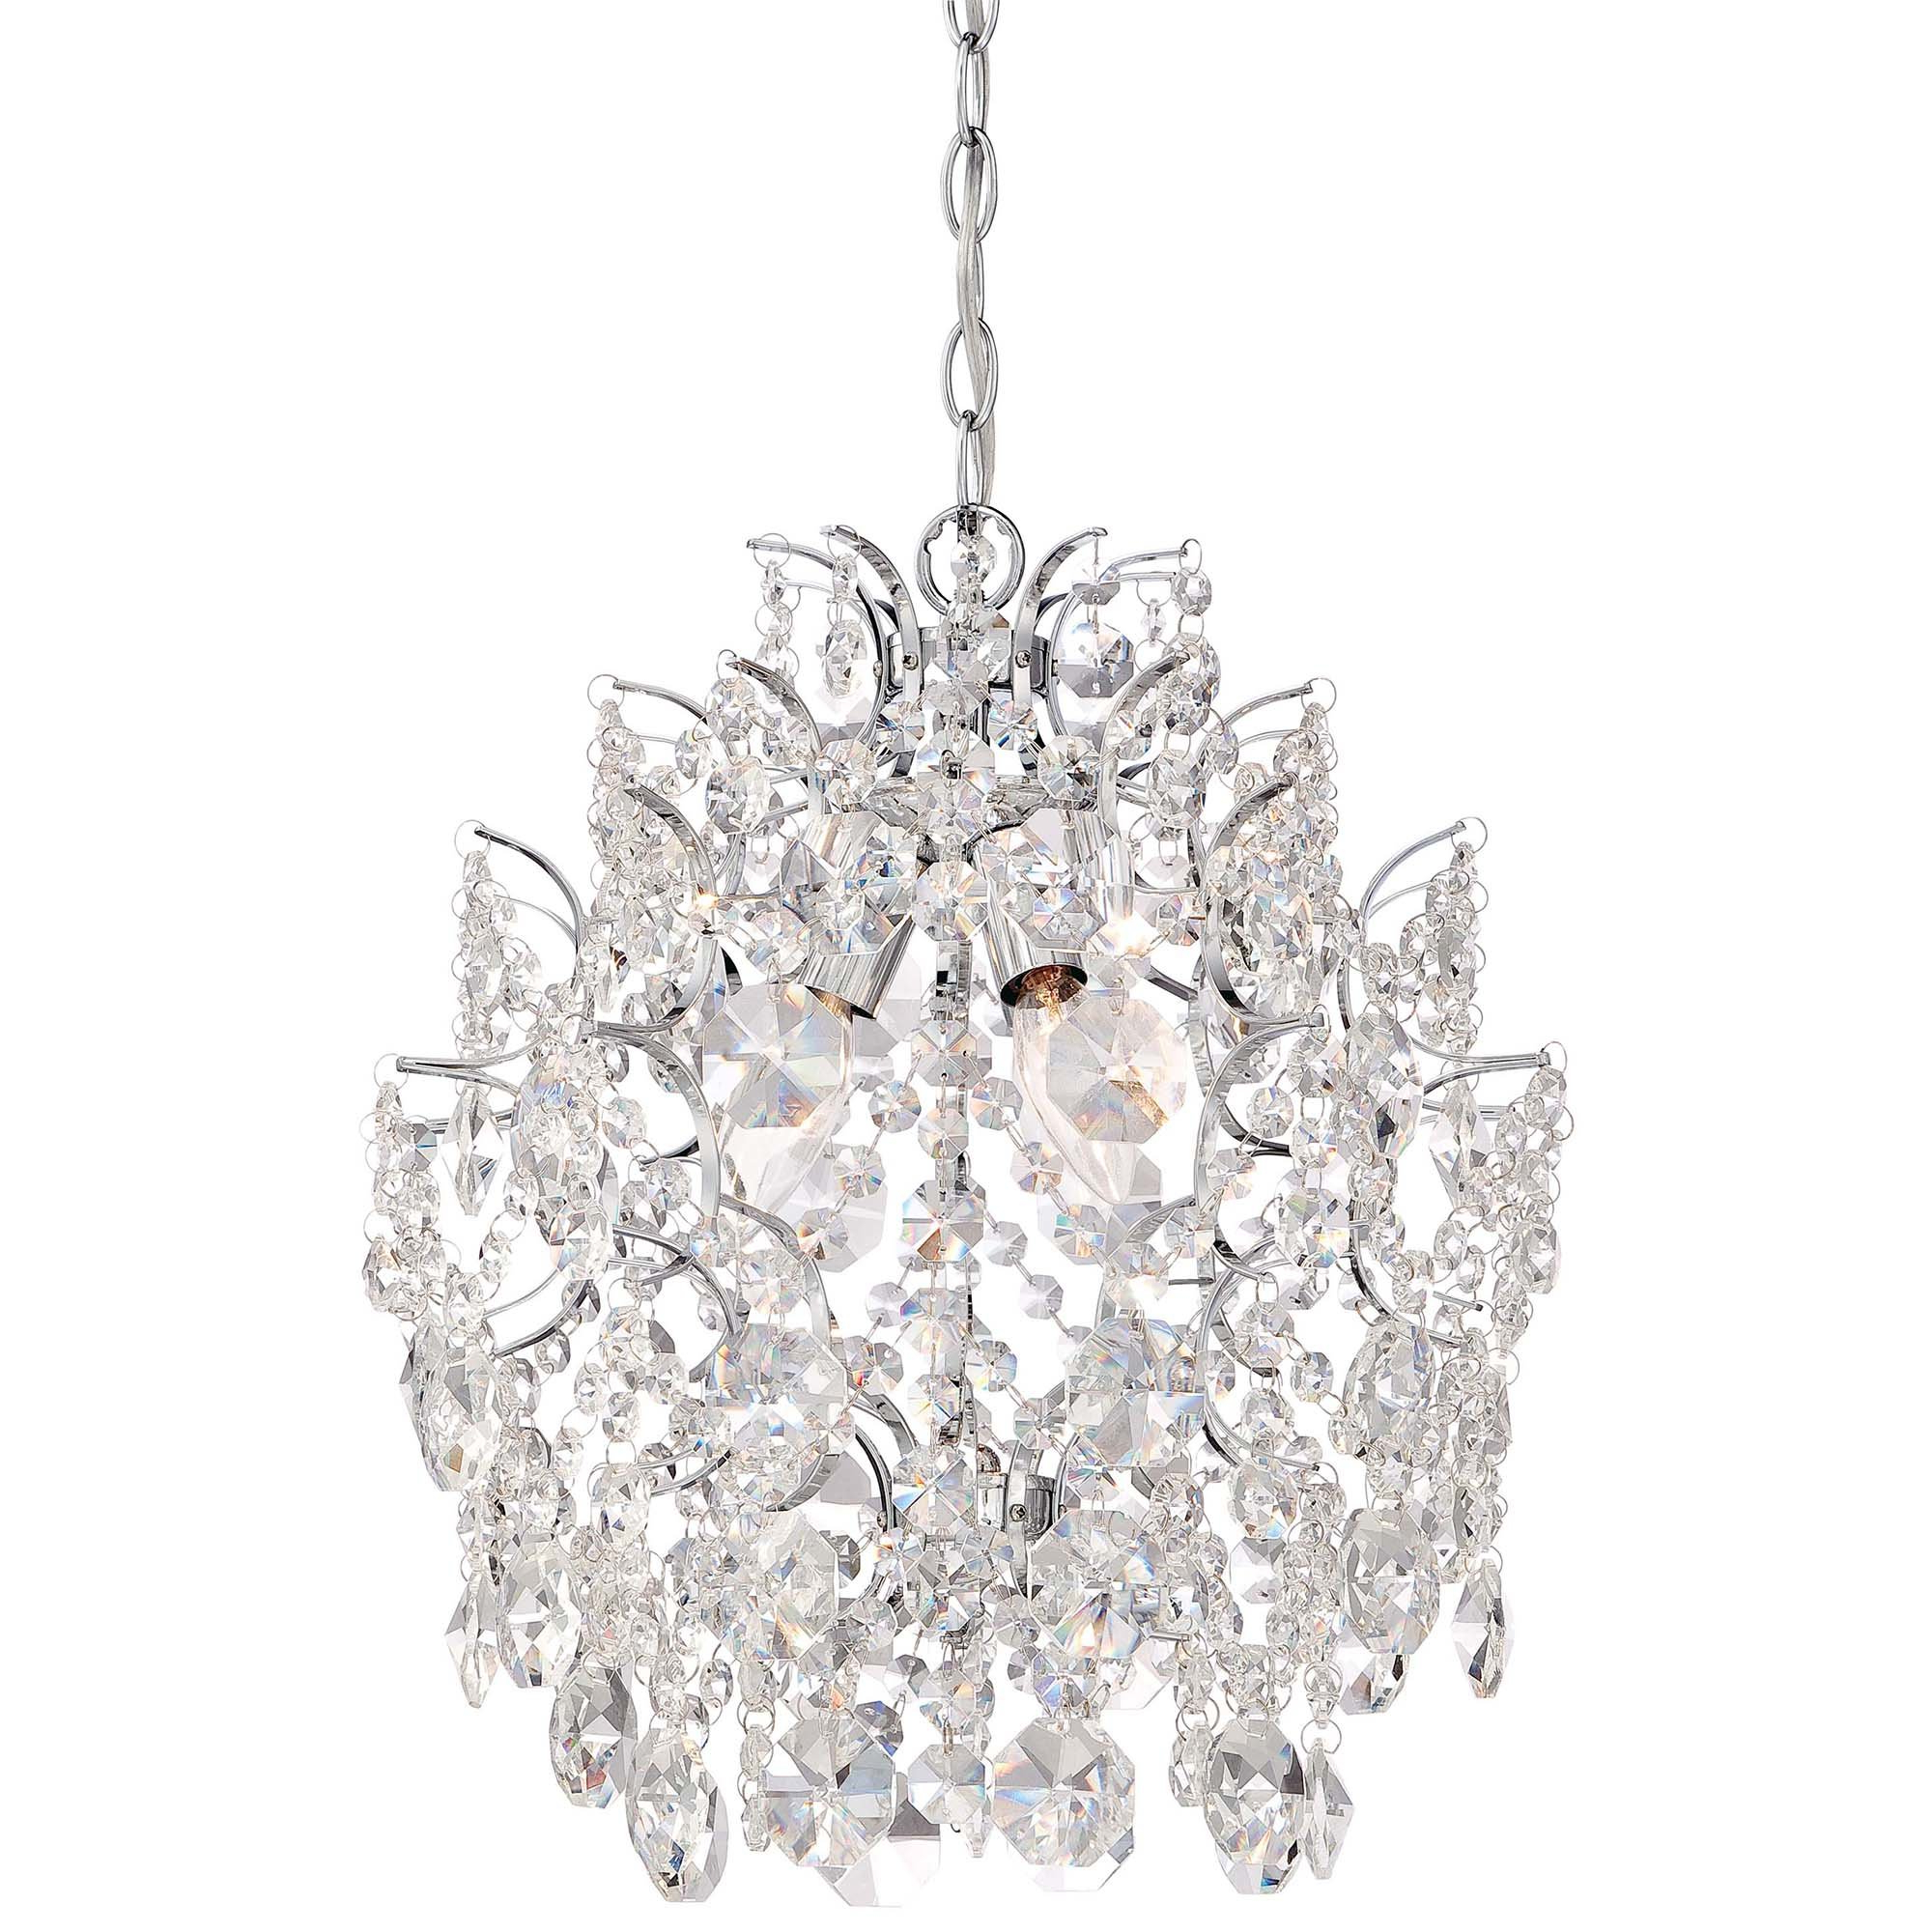 2020 Clea 3 Light Crystal Chandeliers In Willa Arlo Interiors Clea 3 Light Crystal Chandelier (Gallery 2 of 20)